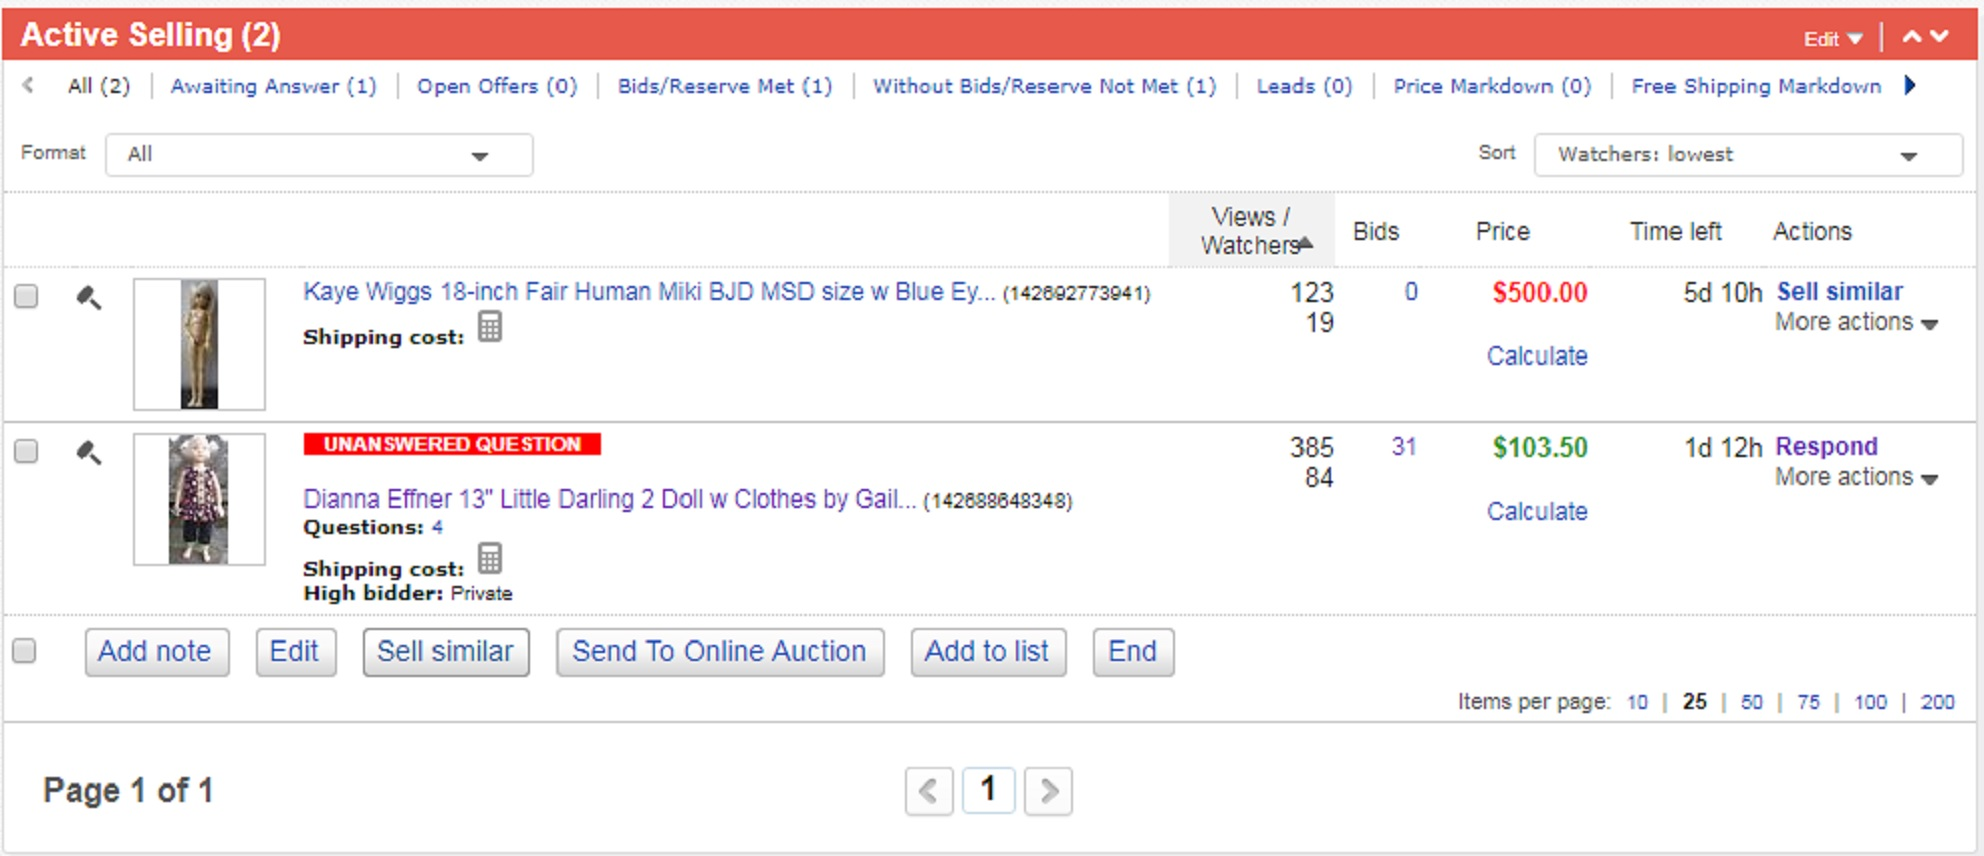 Screencap of ebay action